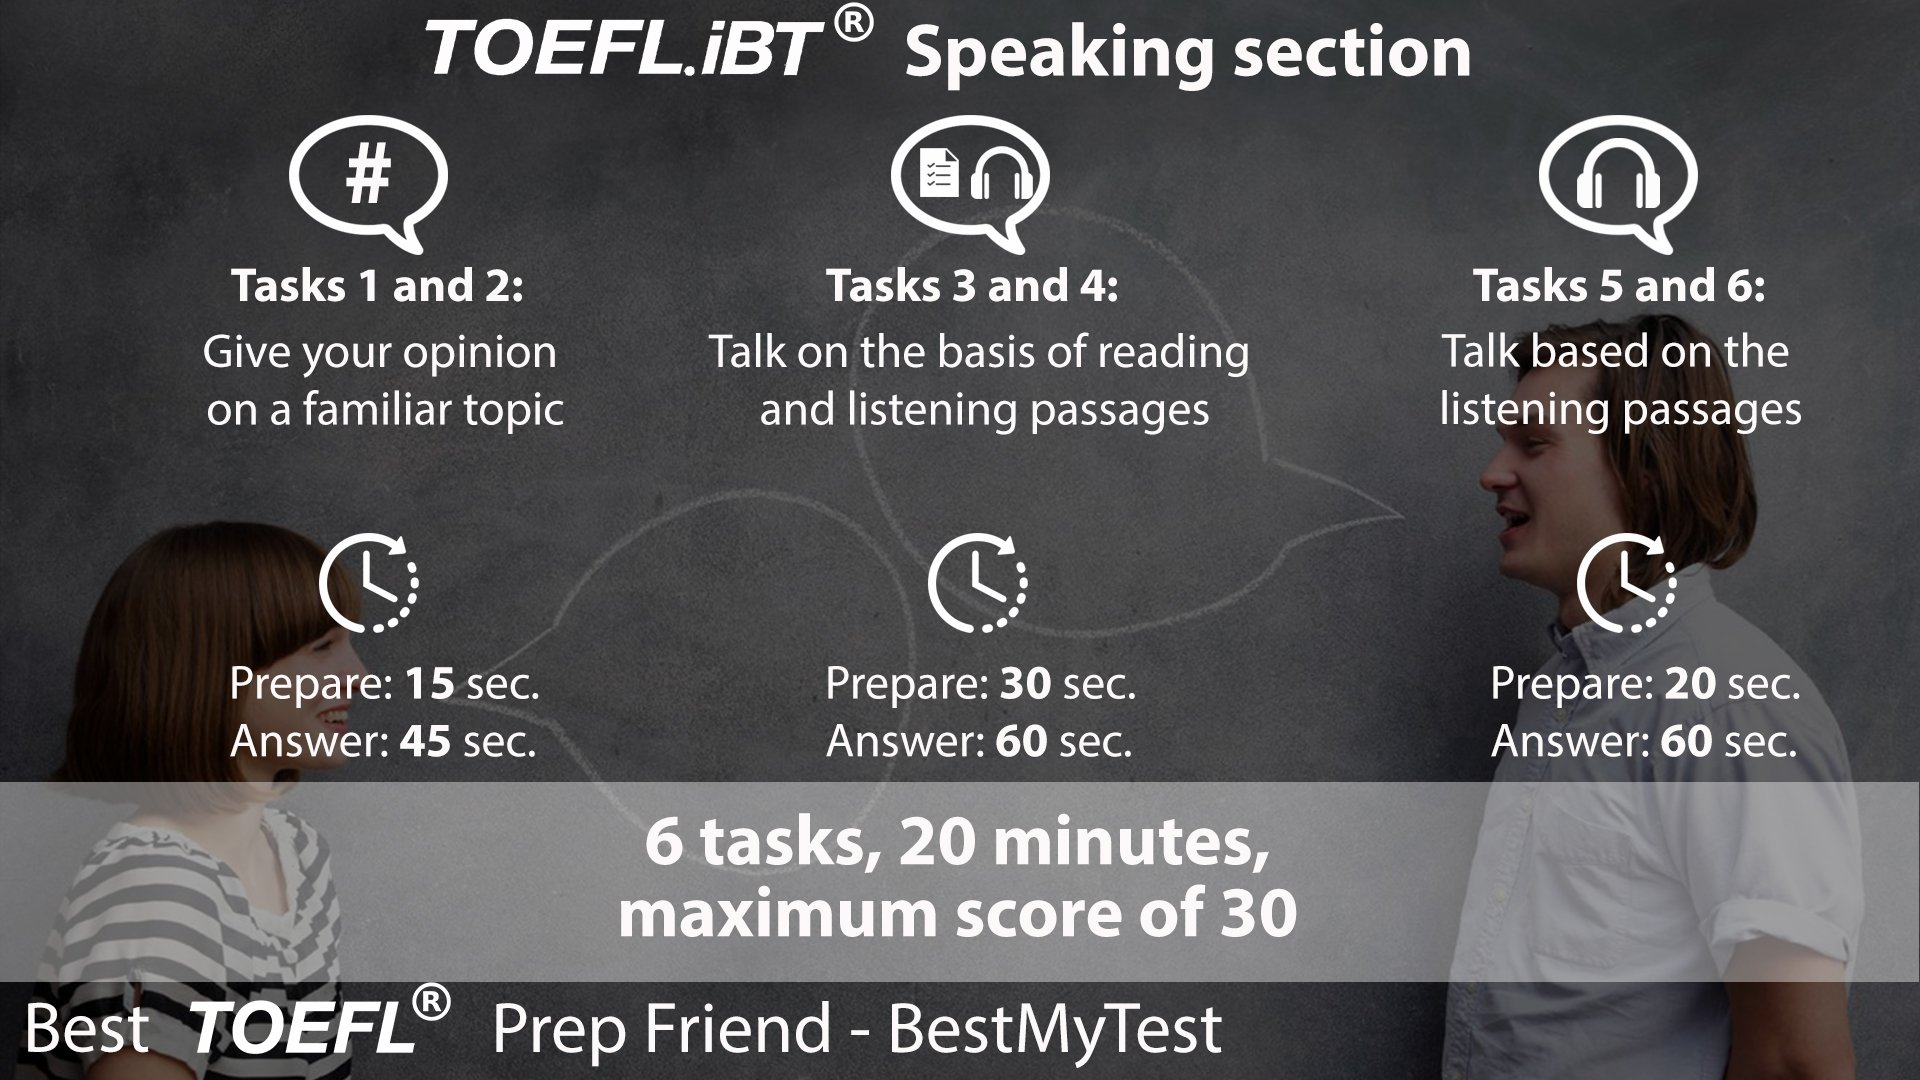 TOEFL speaking test